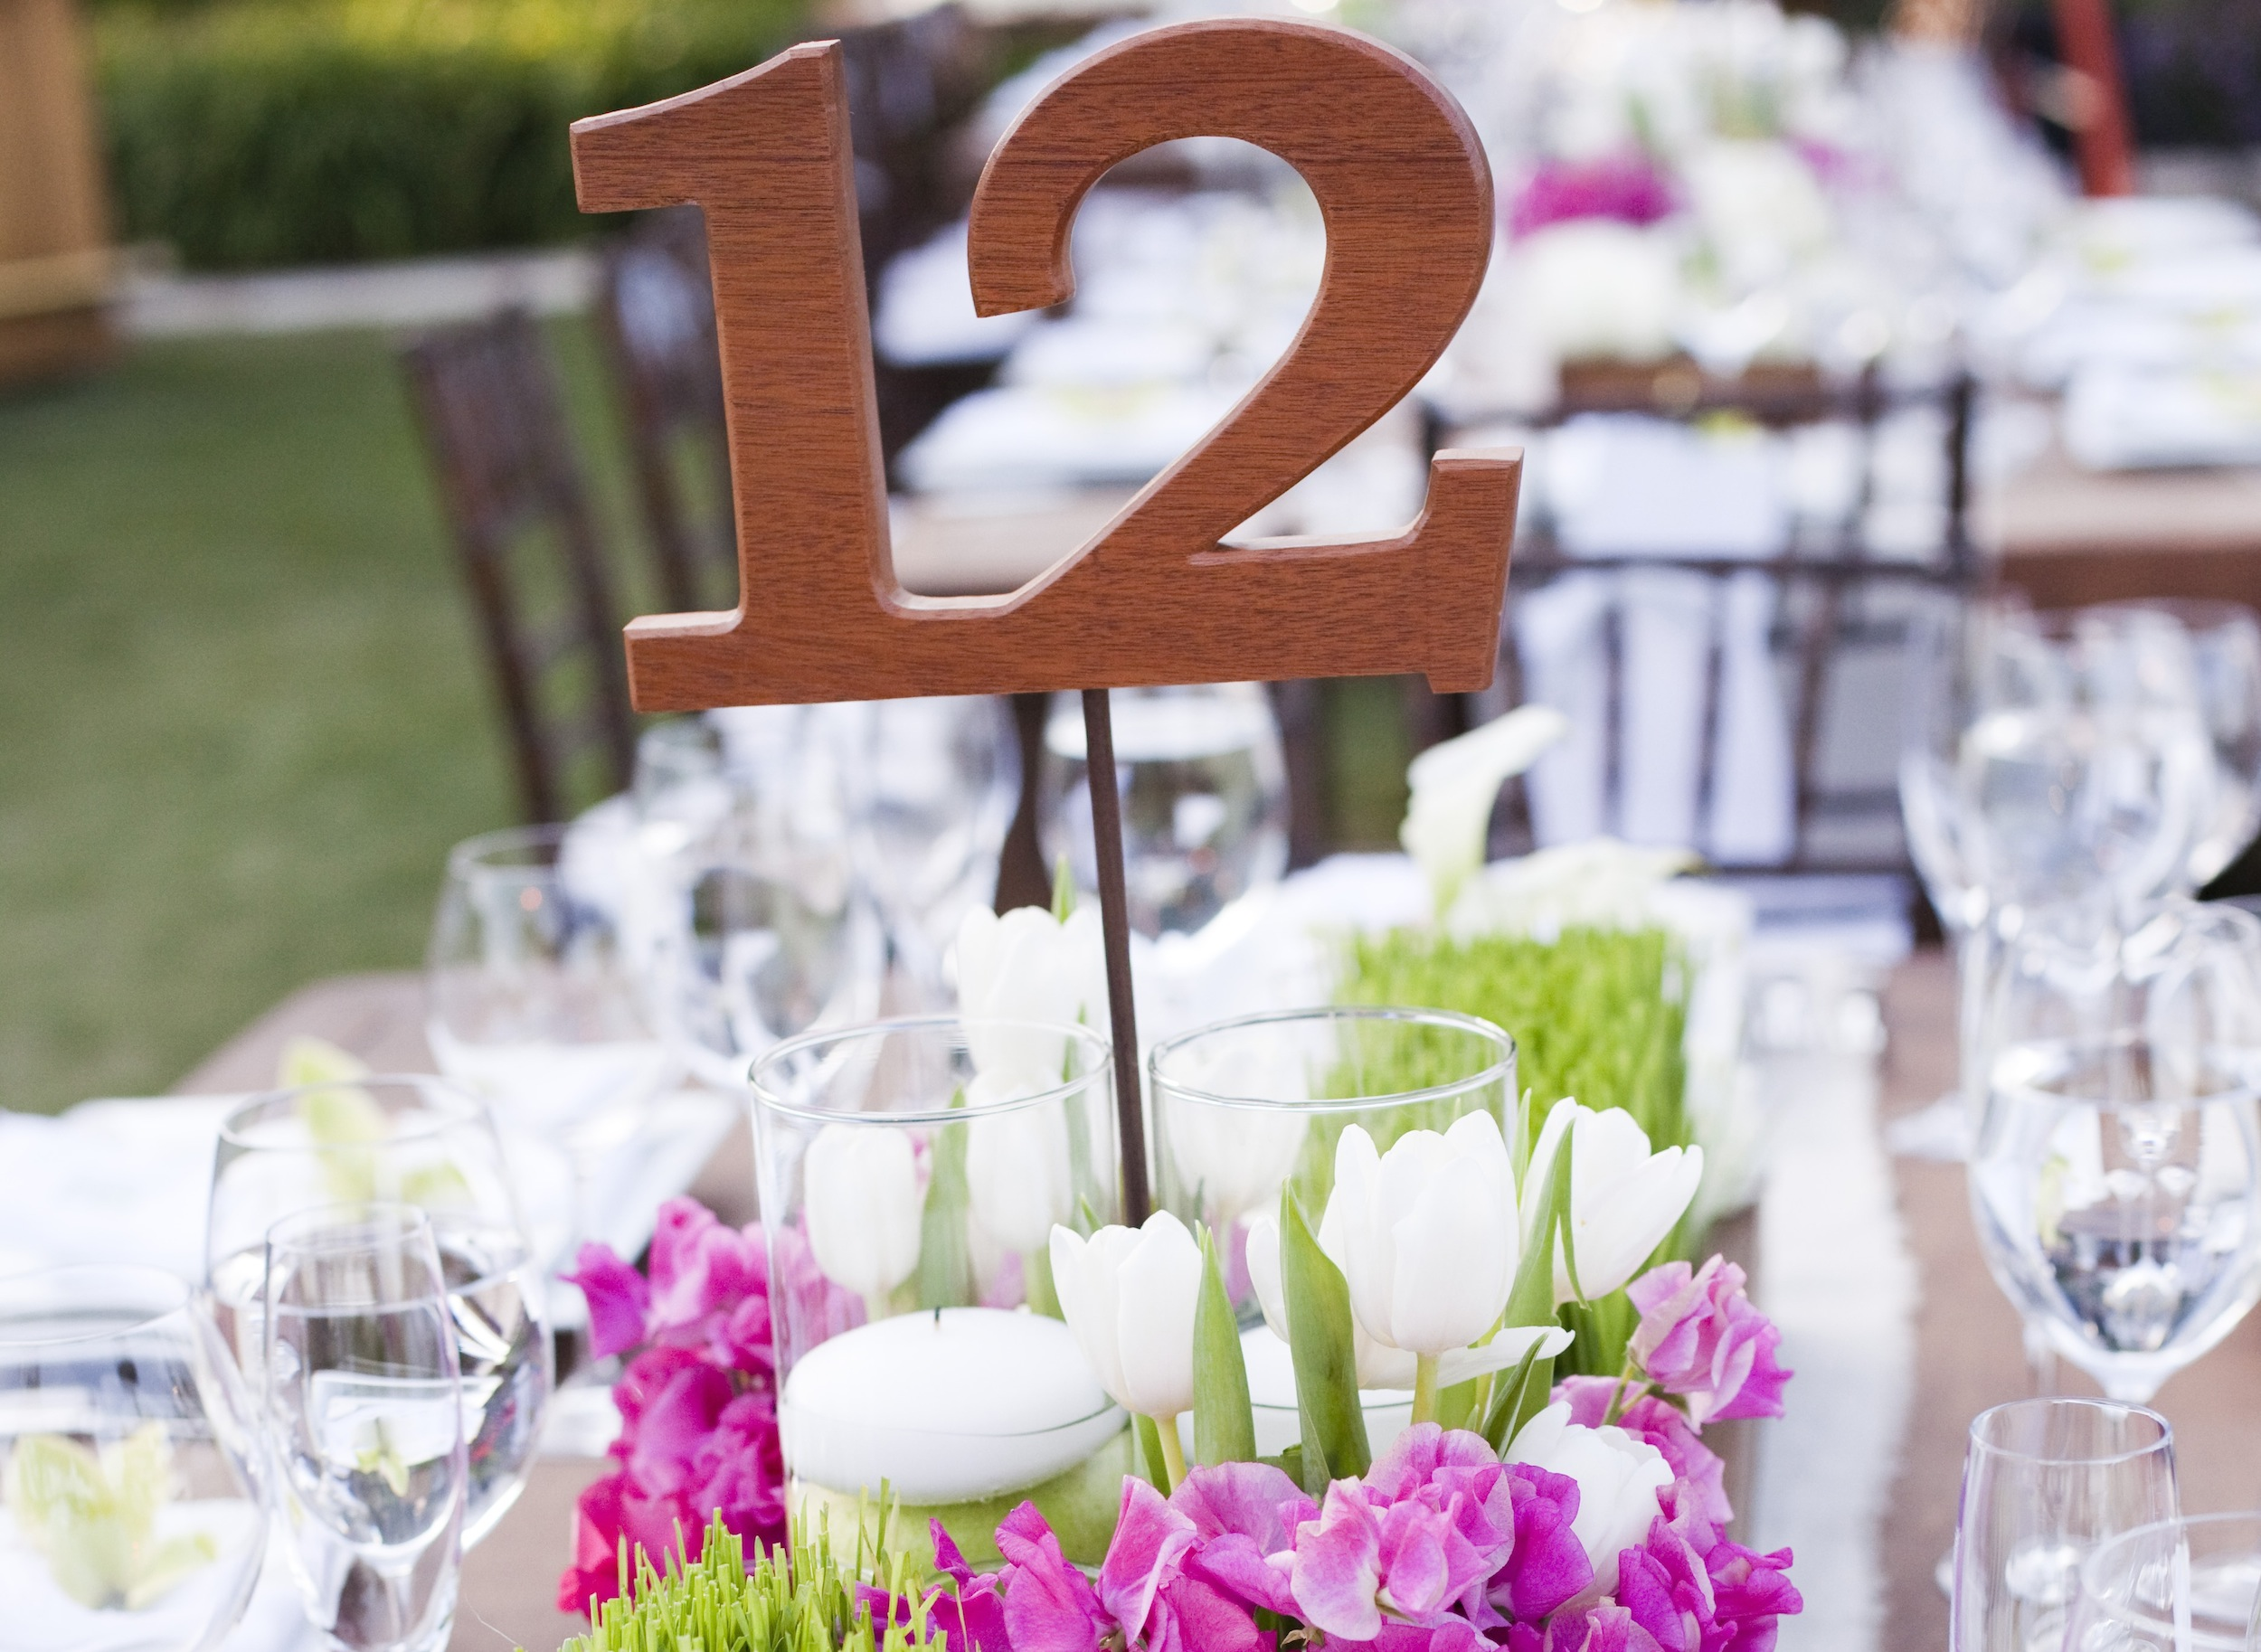 Wedding reception table numbers inside weddings for Table numbers for wedding reception templates